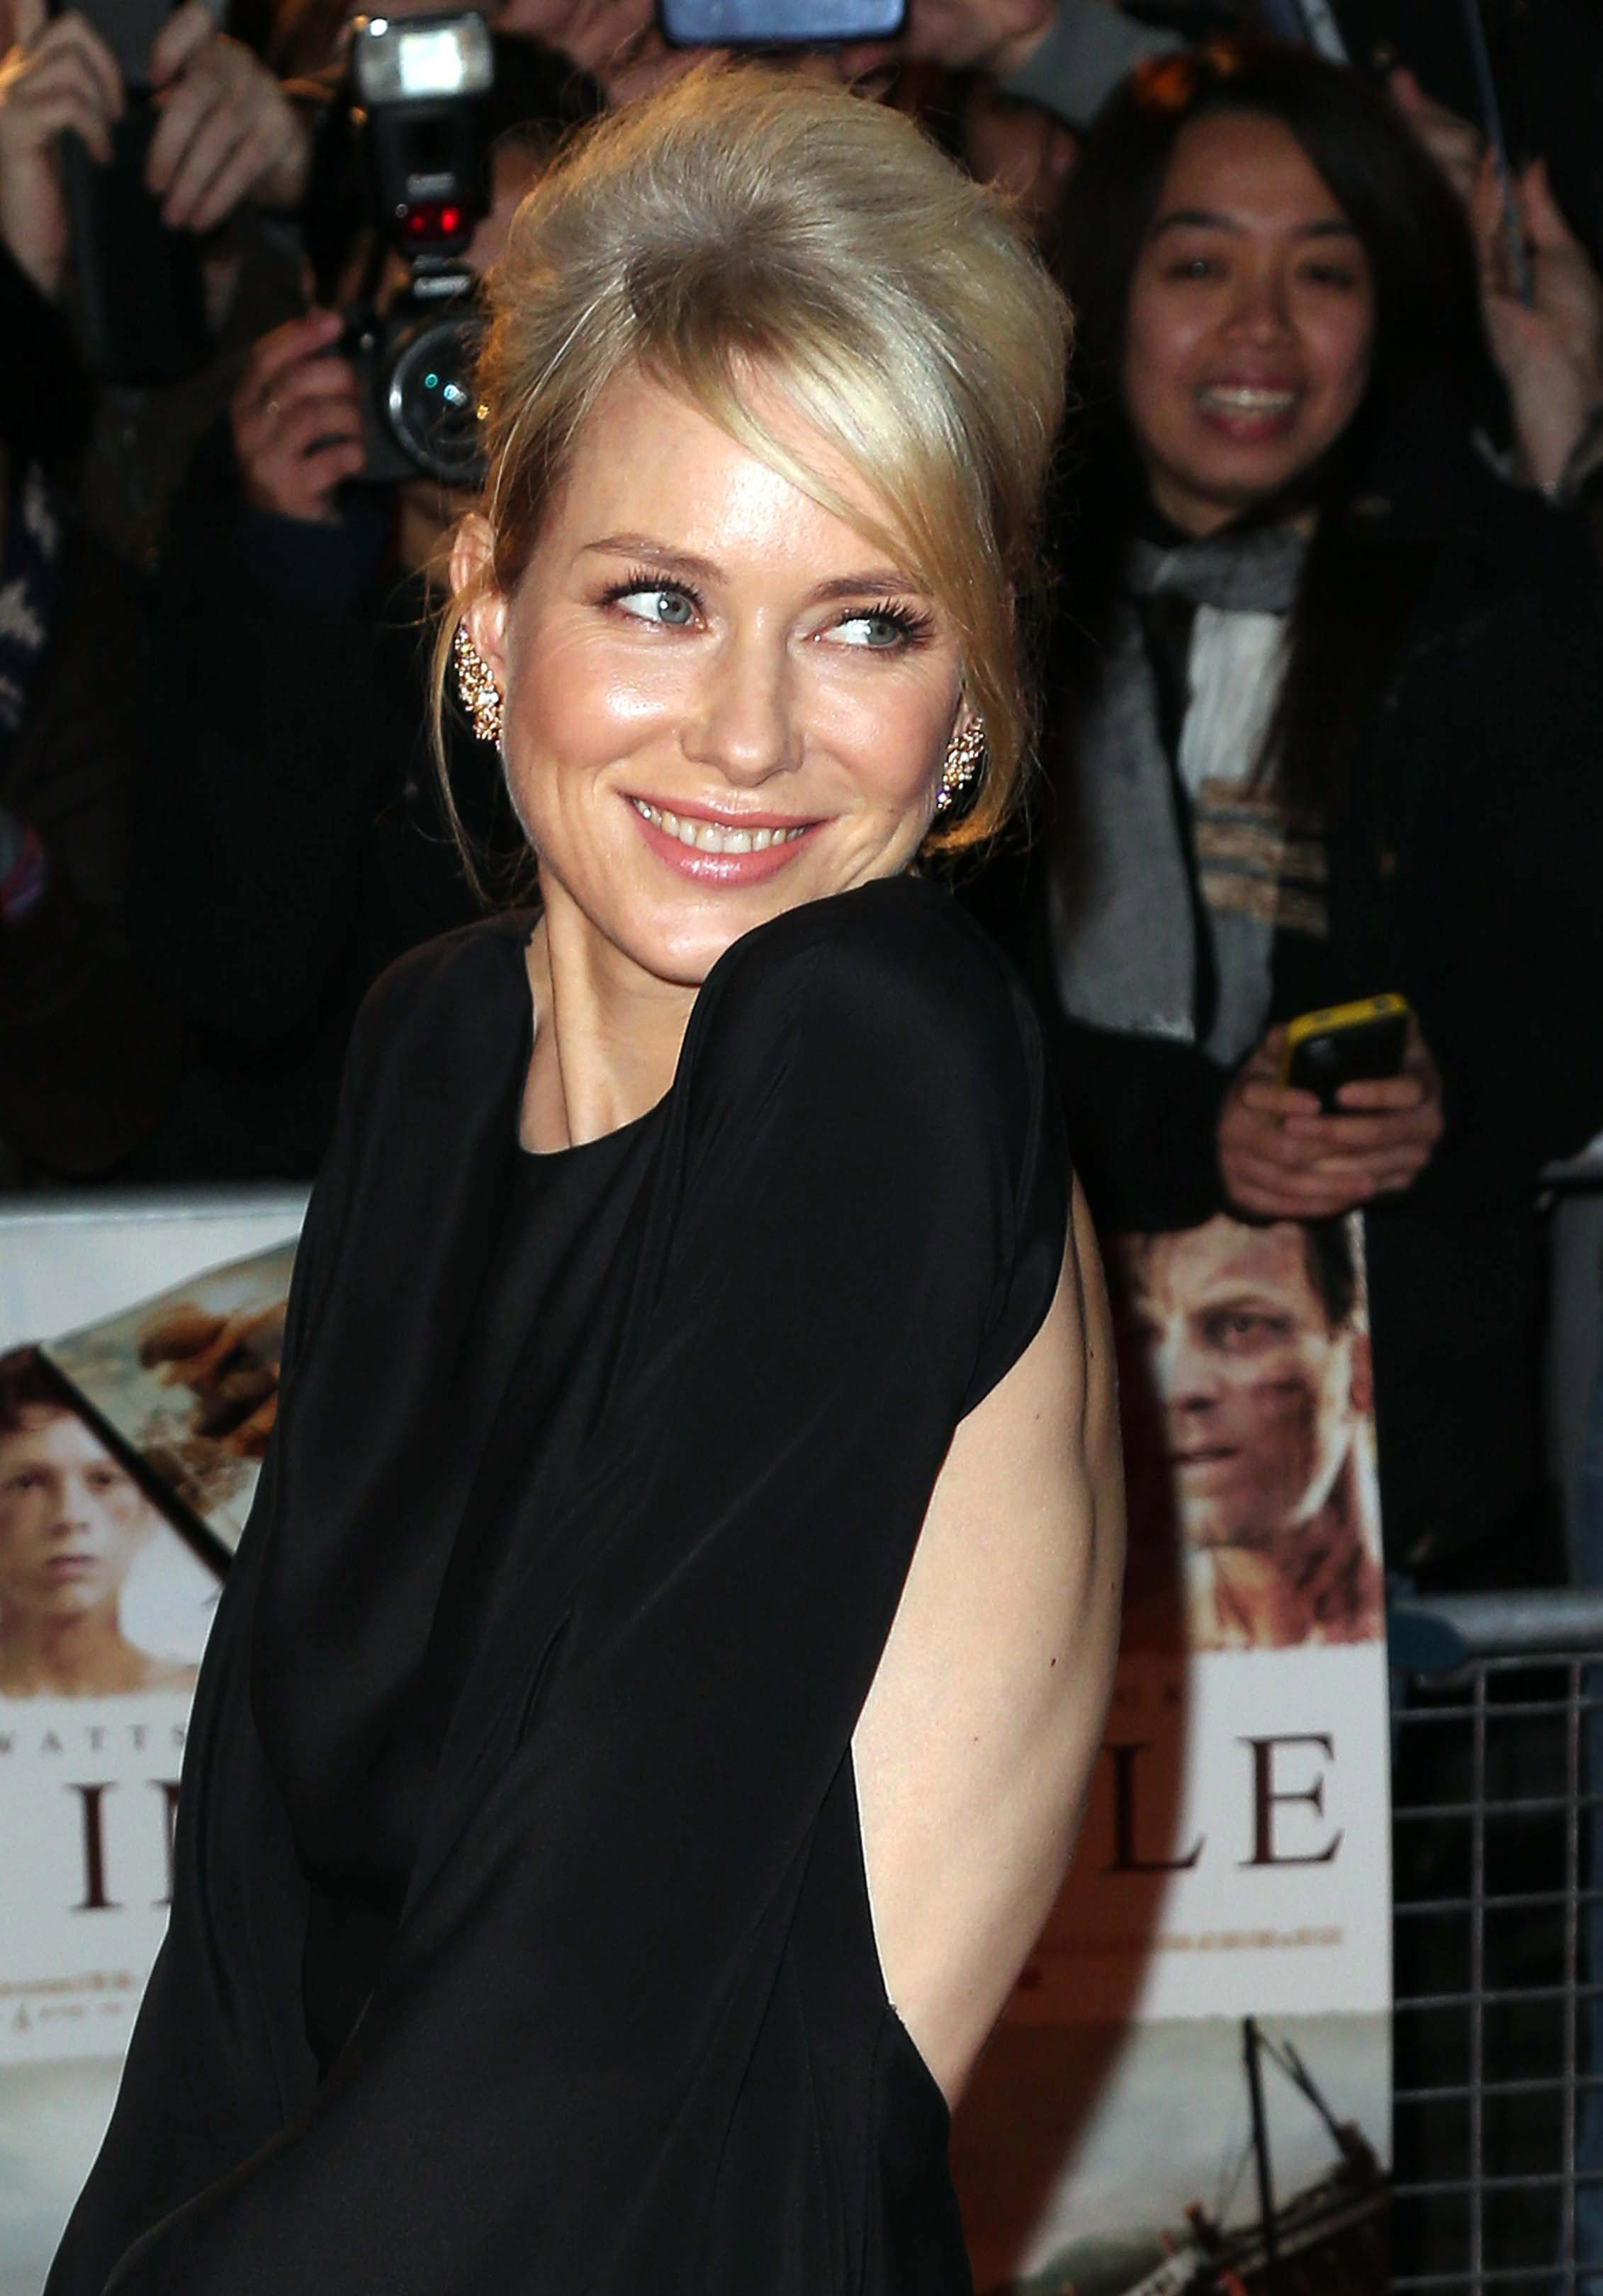 Naomi Watts - The Impossible premiere, London on Nov 20, 2012